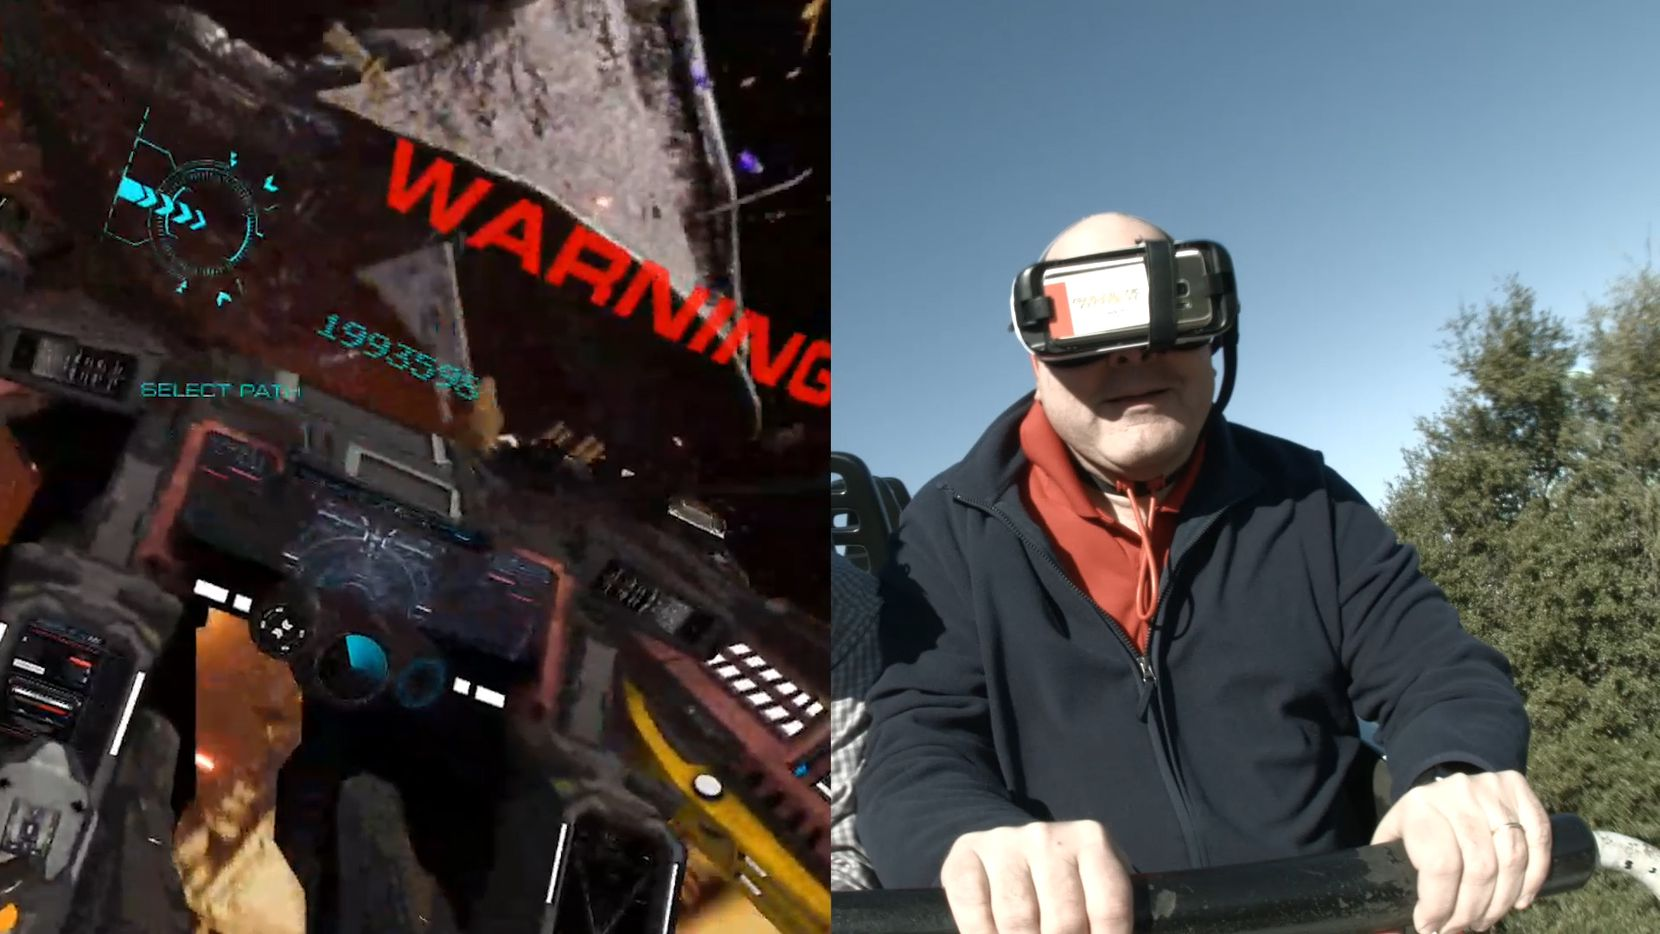 Jim Rossman rides the Galactic Attack VR coaster at Six Flags Over Texas in Arlington, Texas. In this split screen, what Jim sees through the VR goggles is on the left. (Six Flags Over Texas)